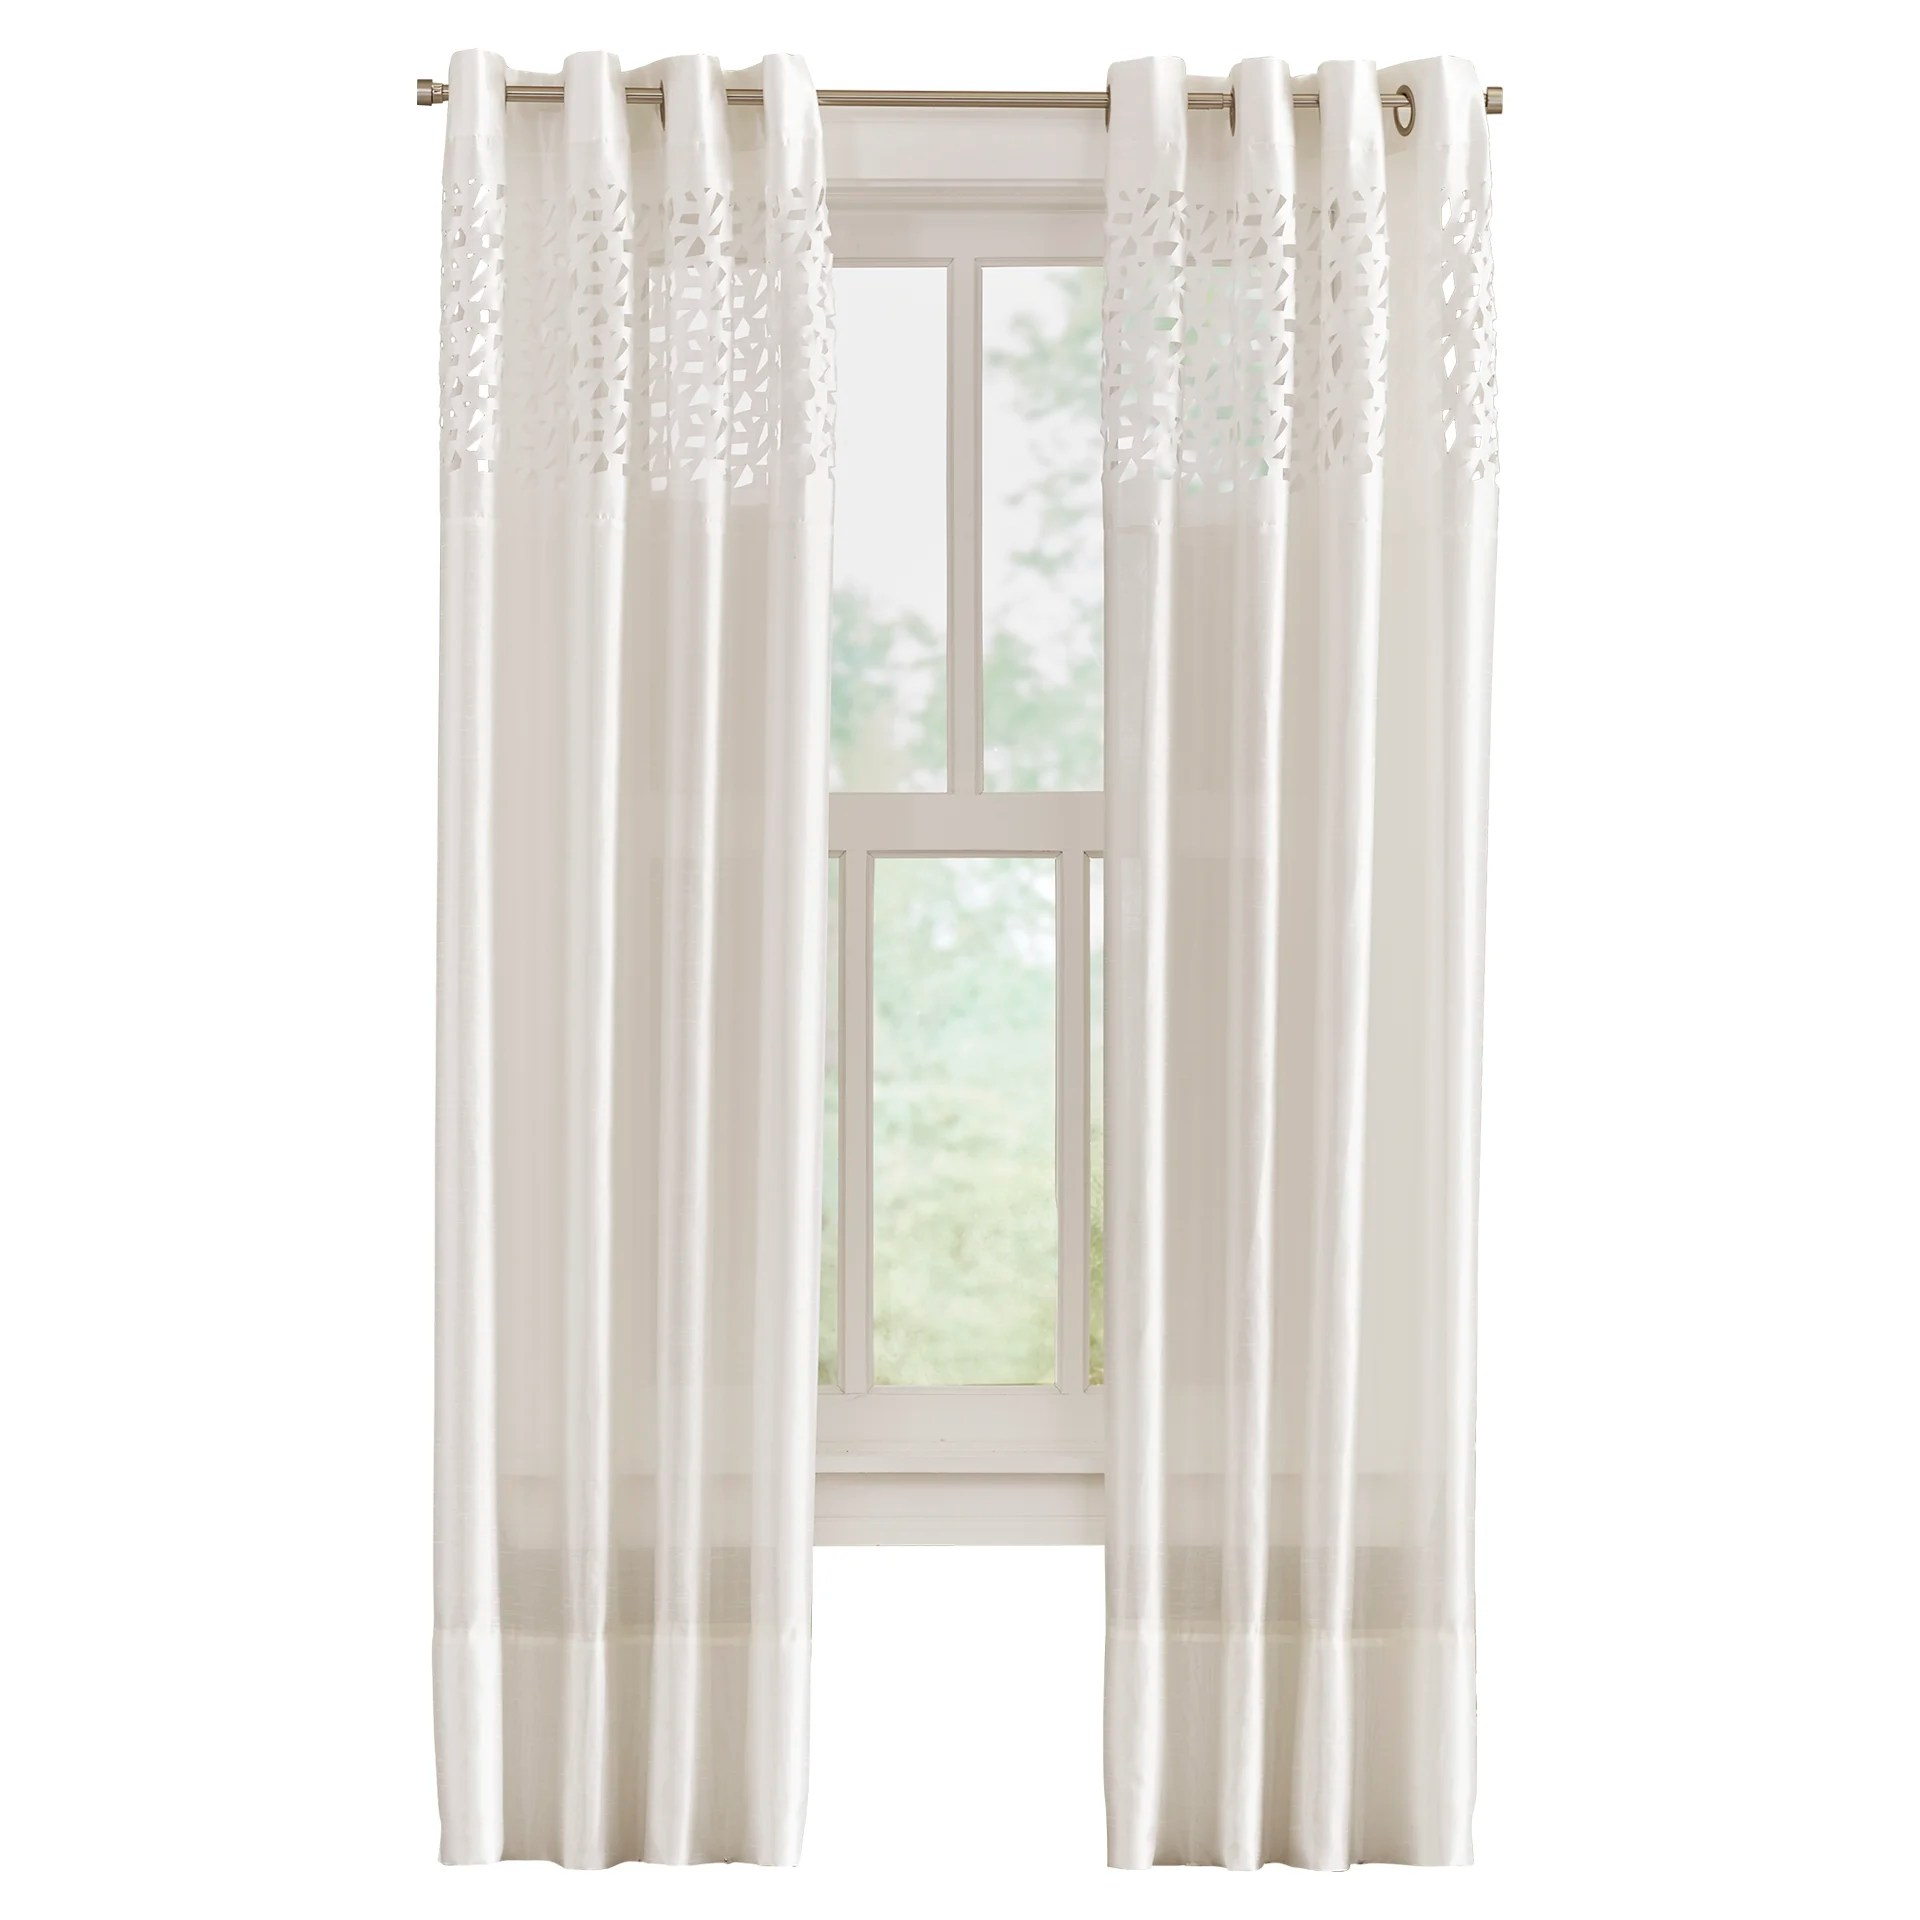 Curtains 102 Inches Long